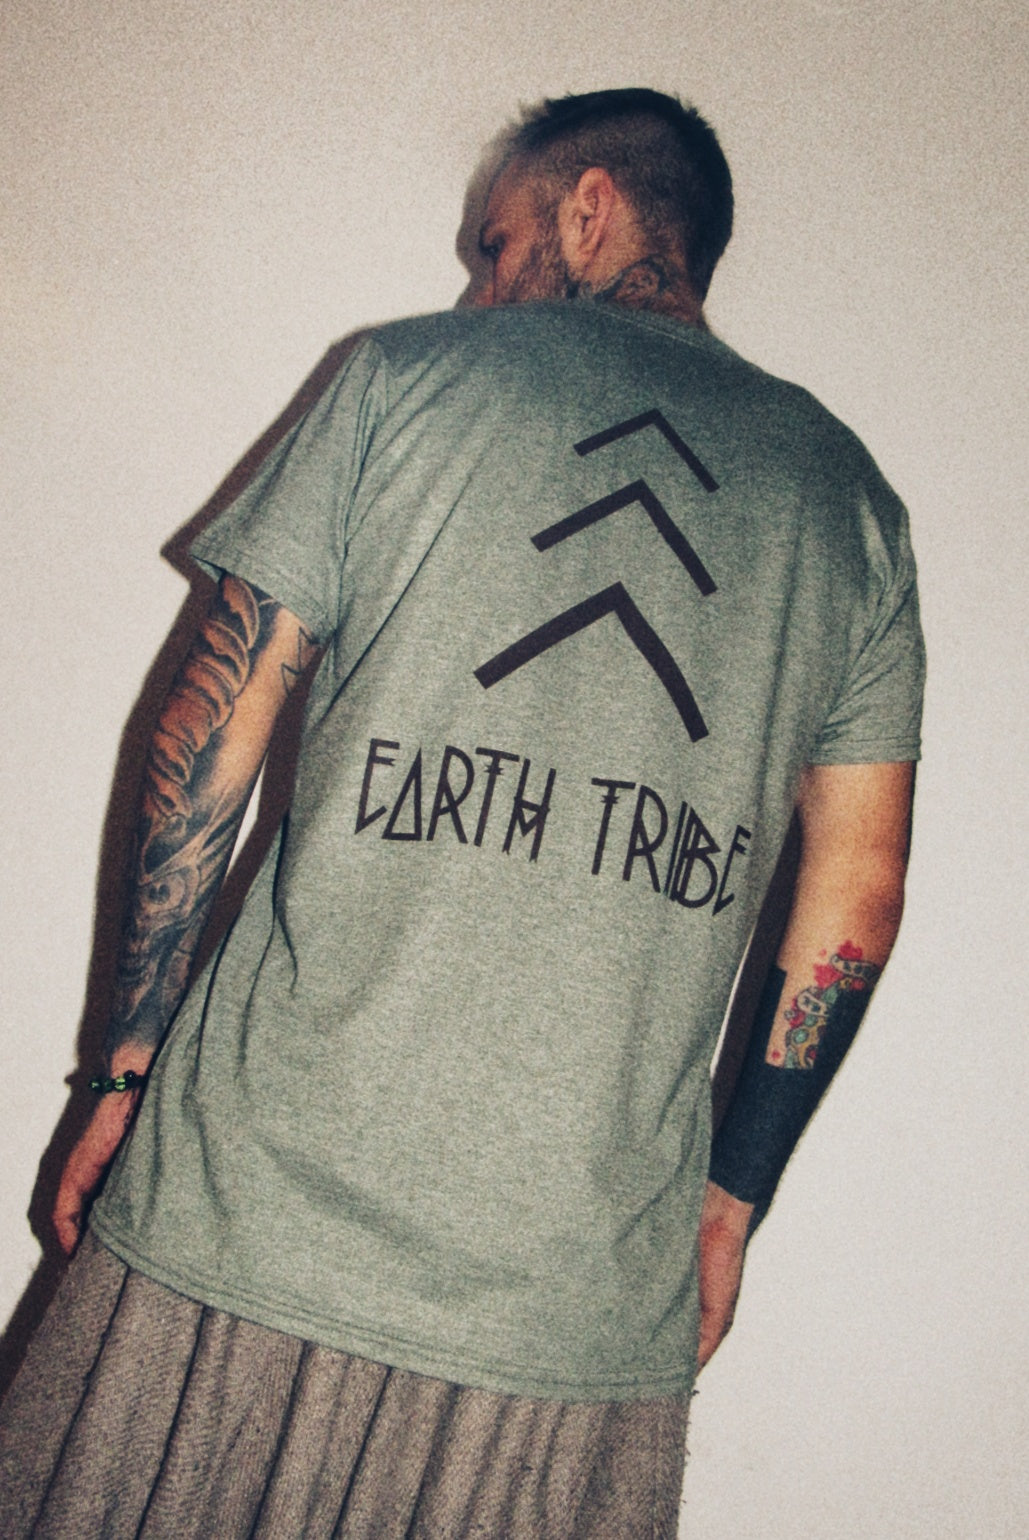 EARTH TRIBE RESILIENCE TEE